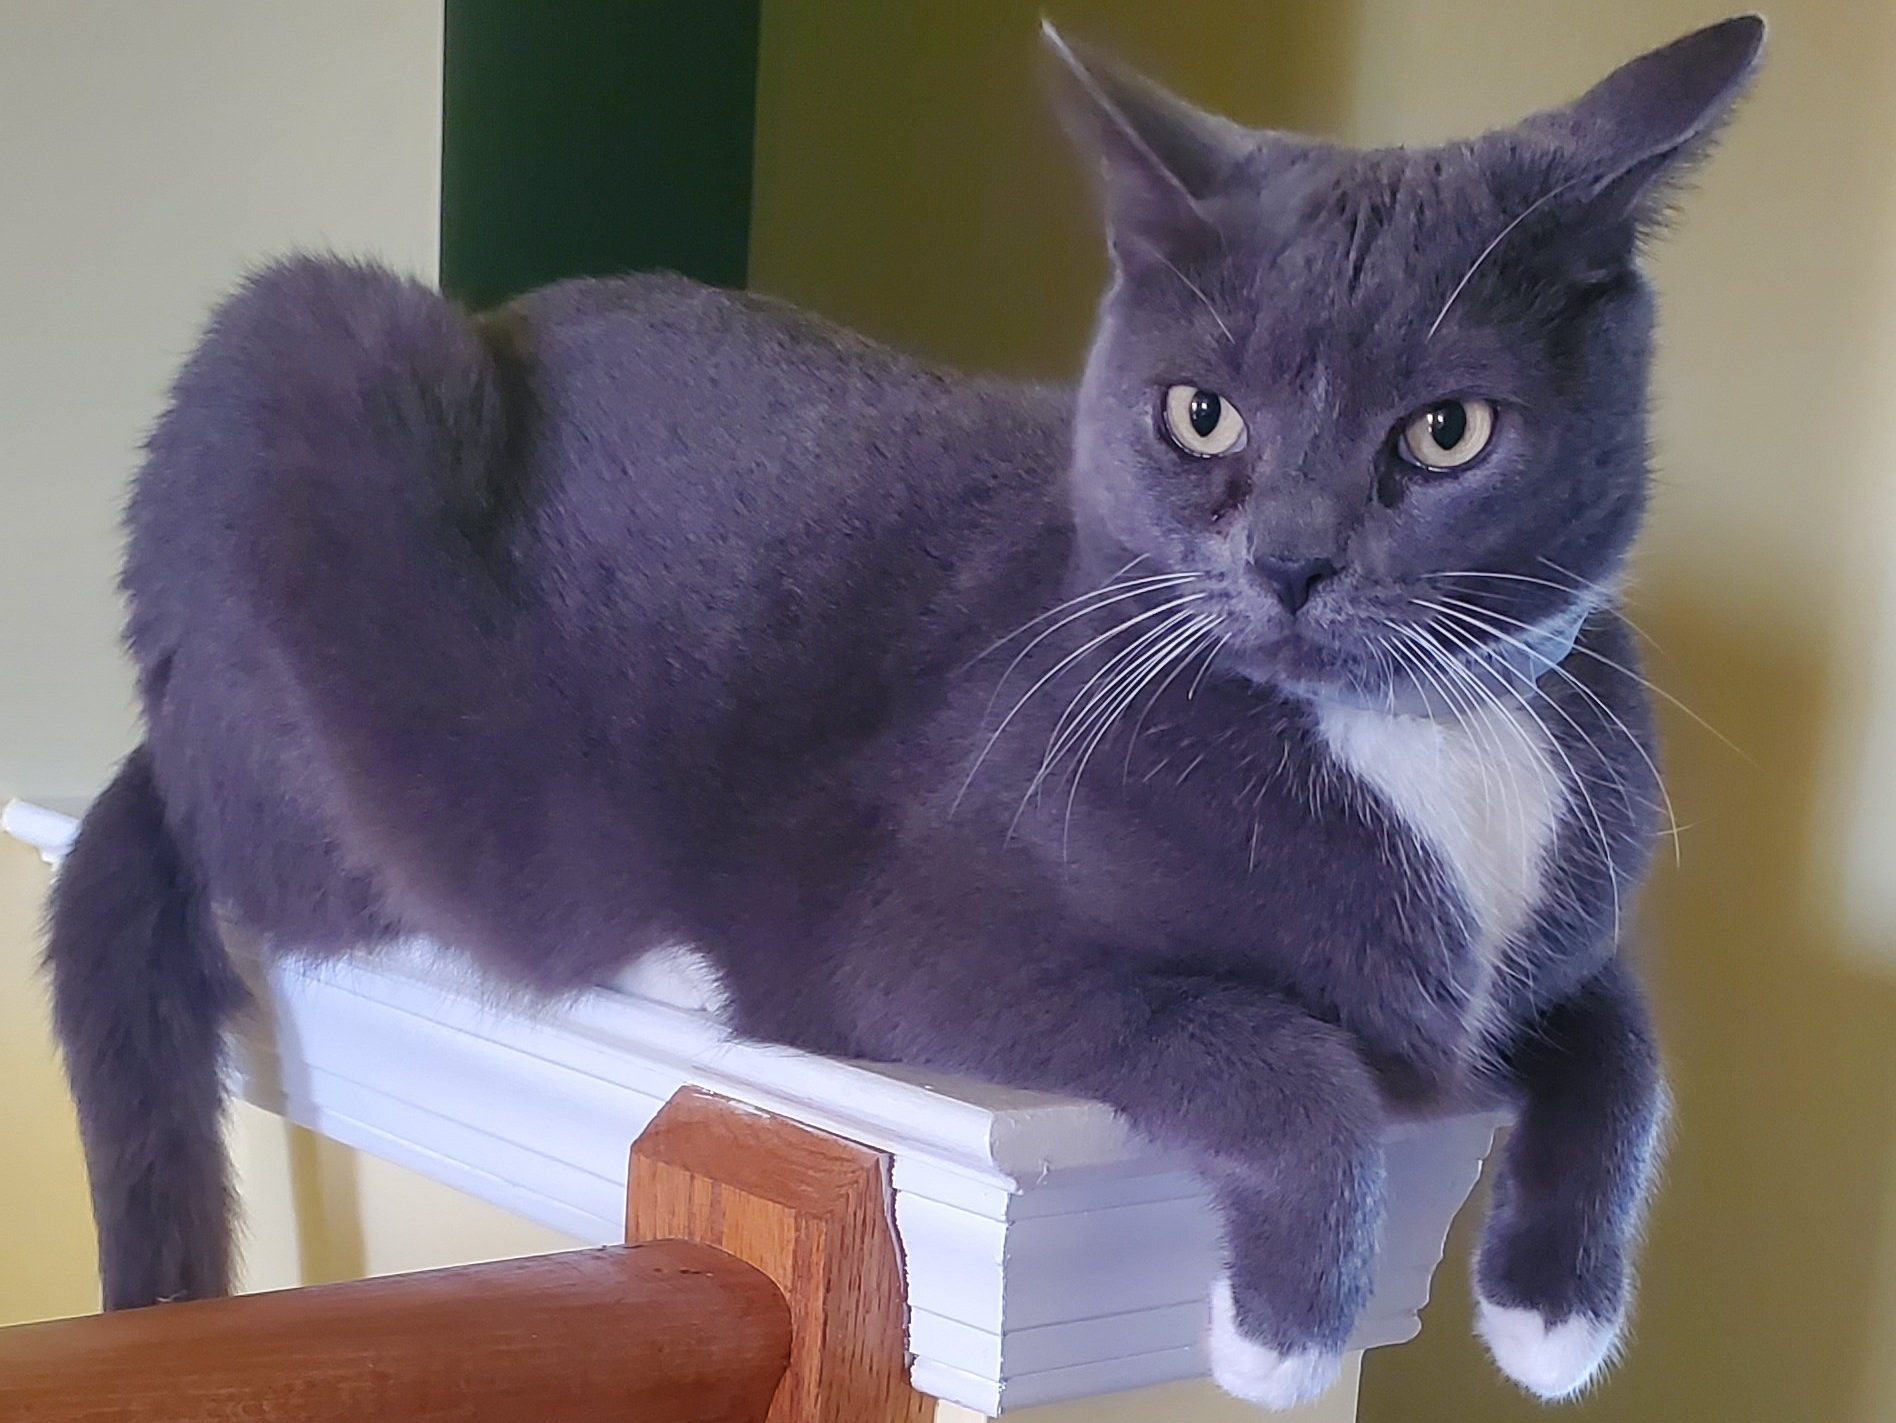 gray and white cat on perch